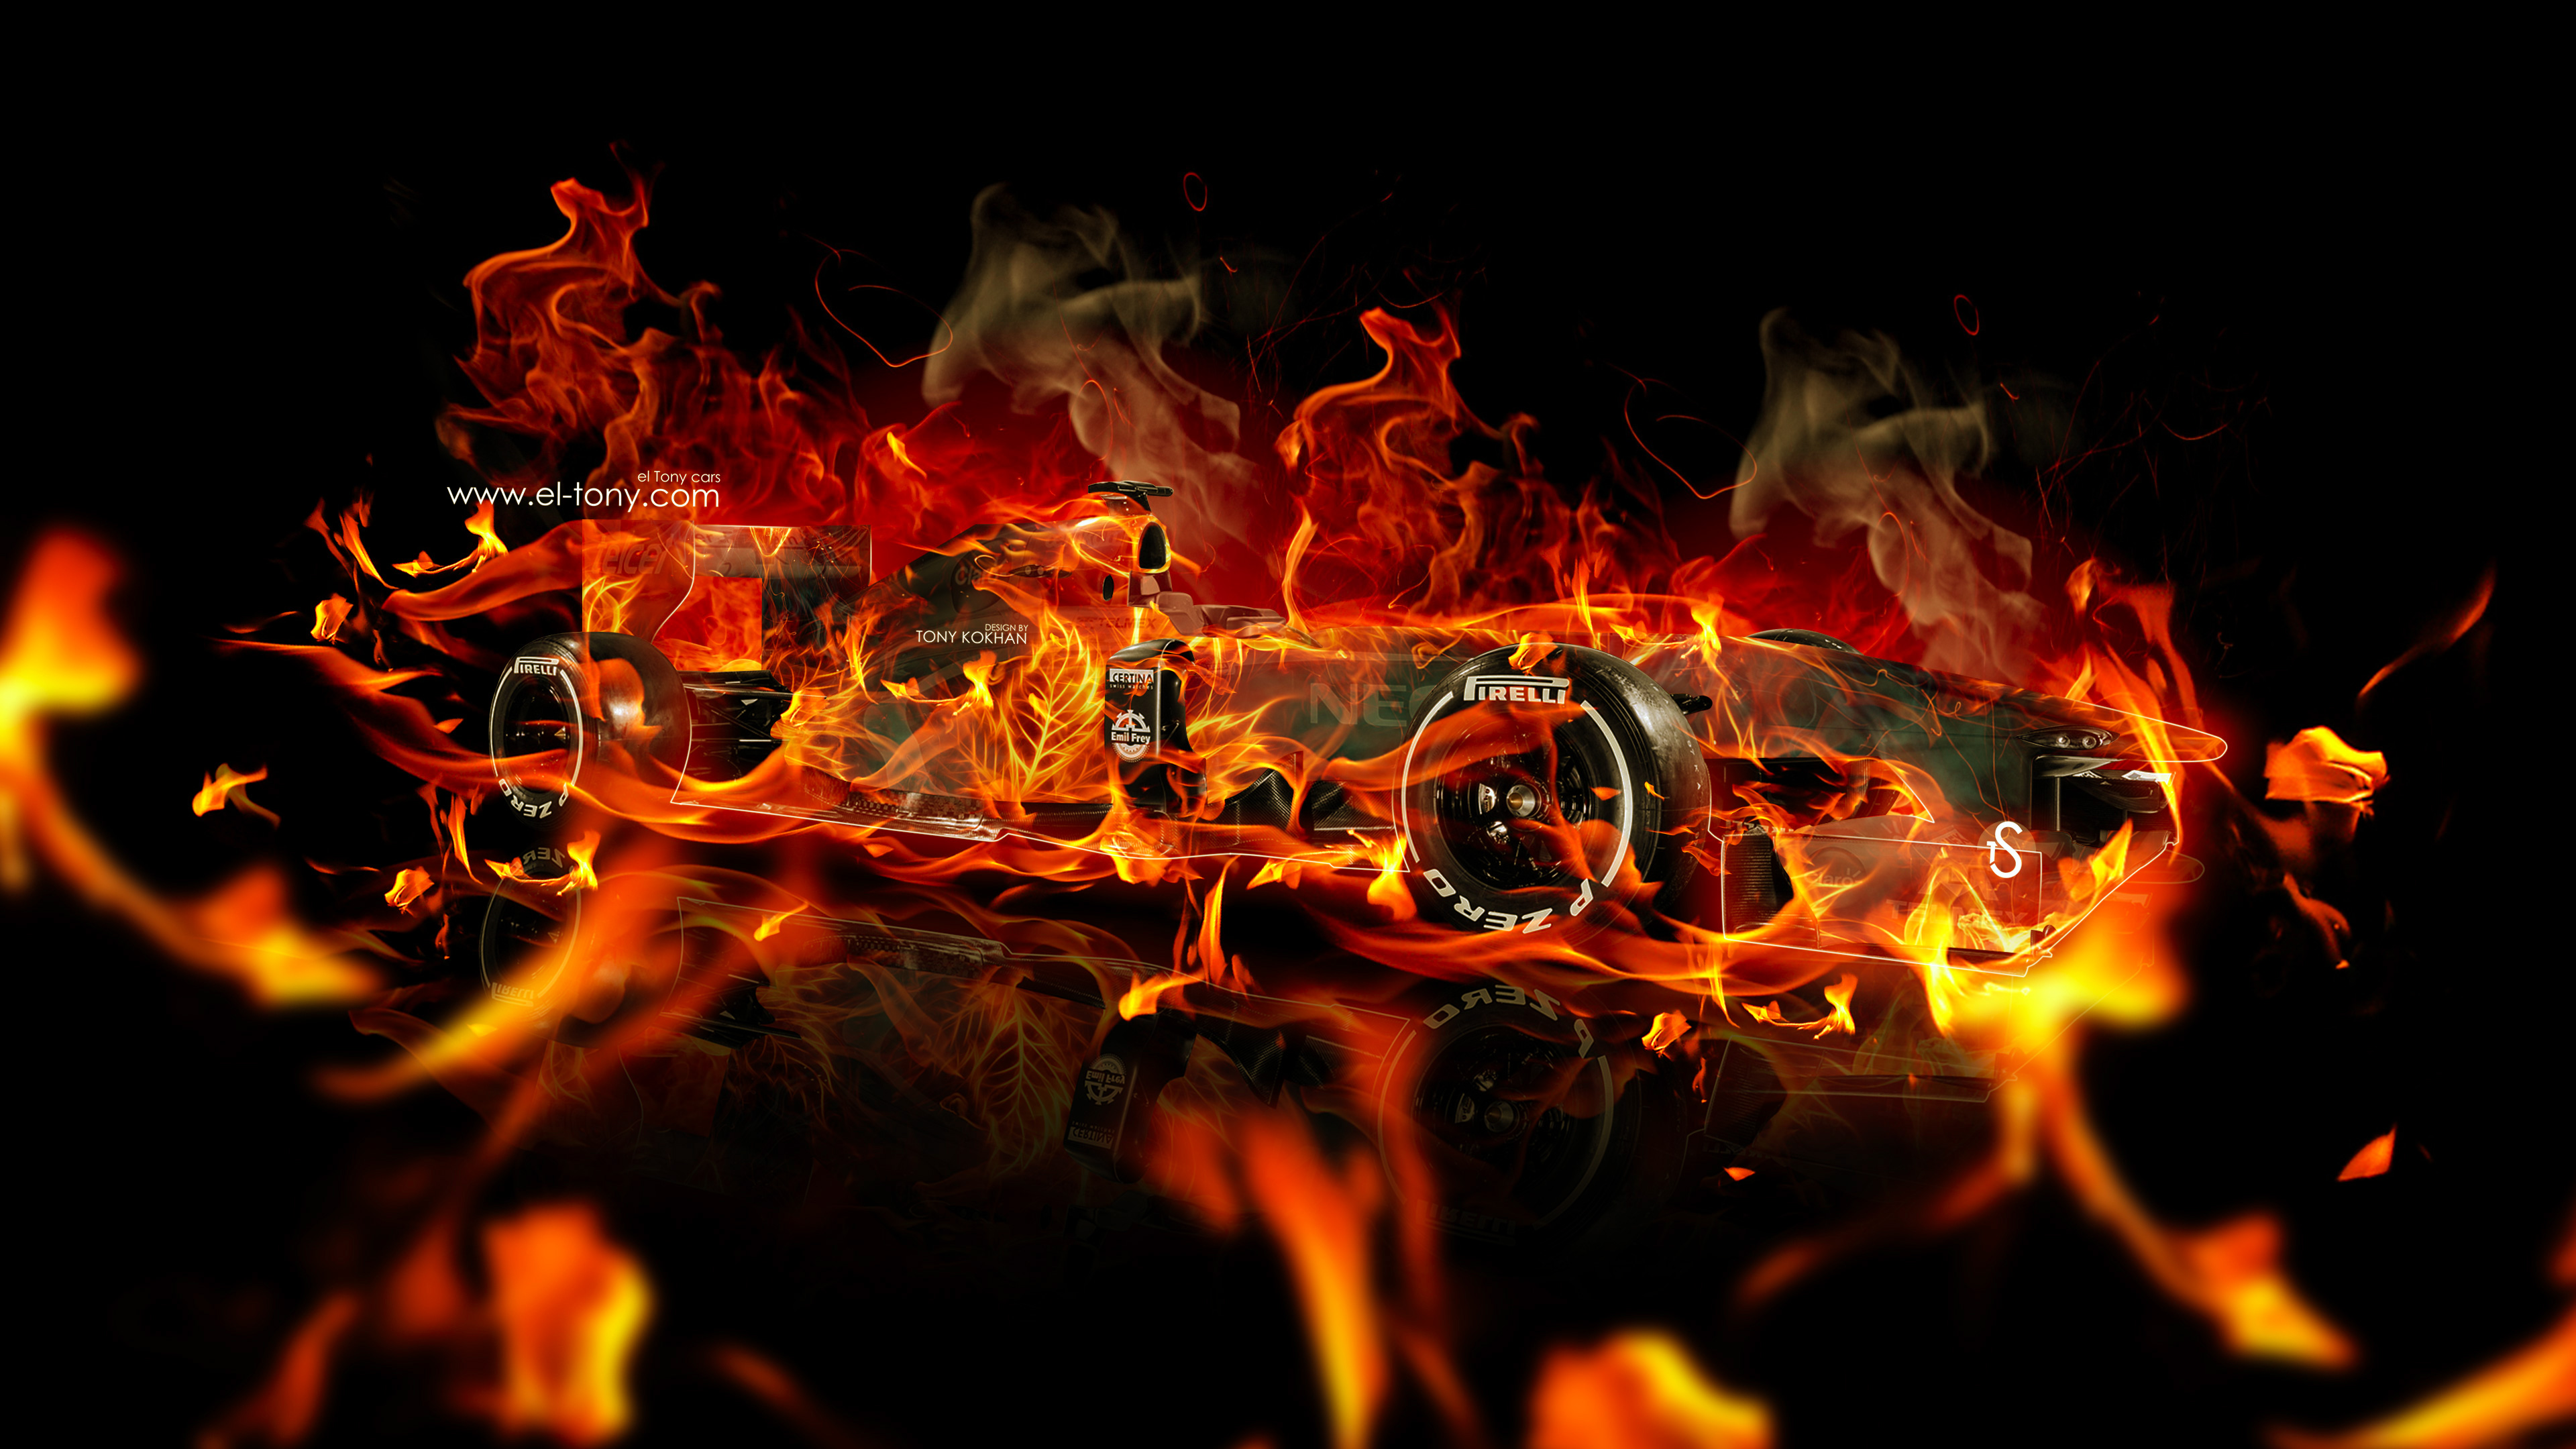 4k Wallpapers F1 Super Fire Abstract Car 2015 El Tony